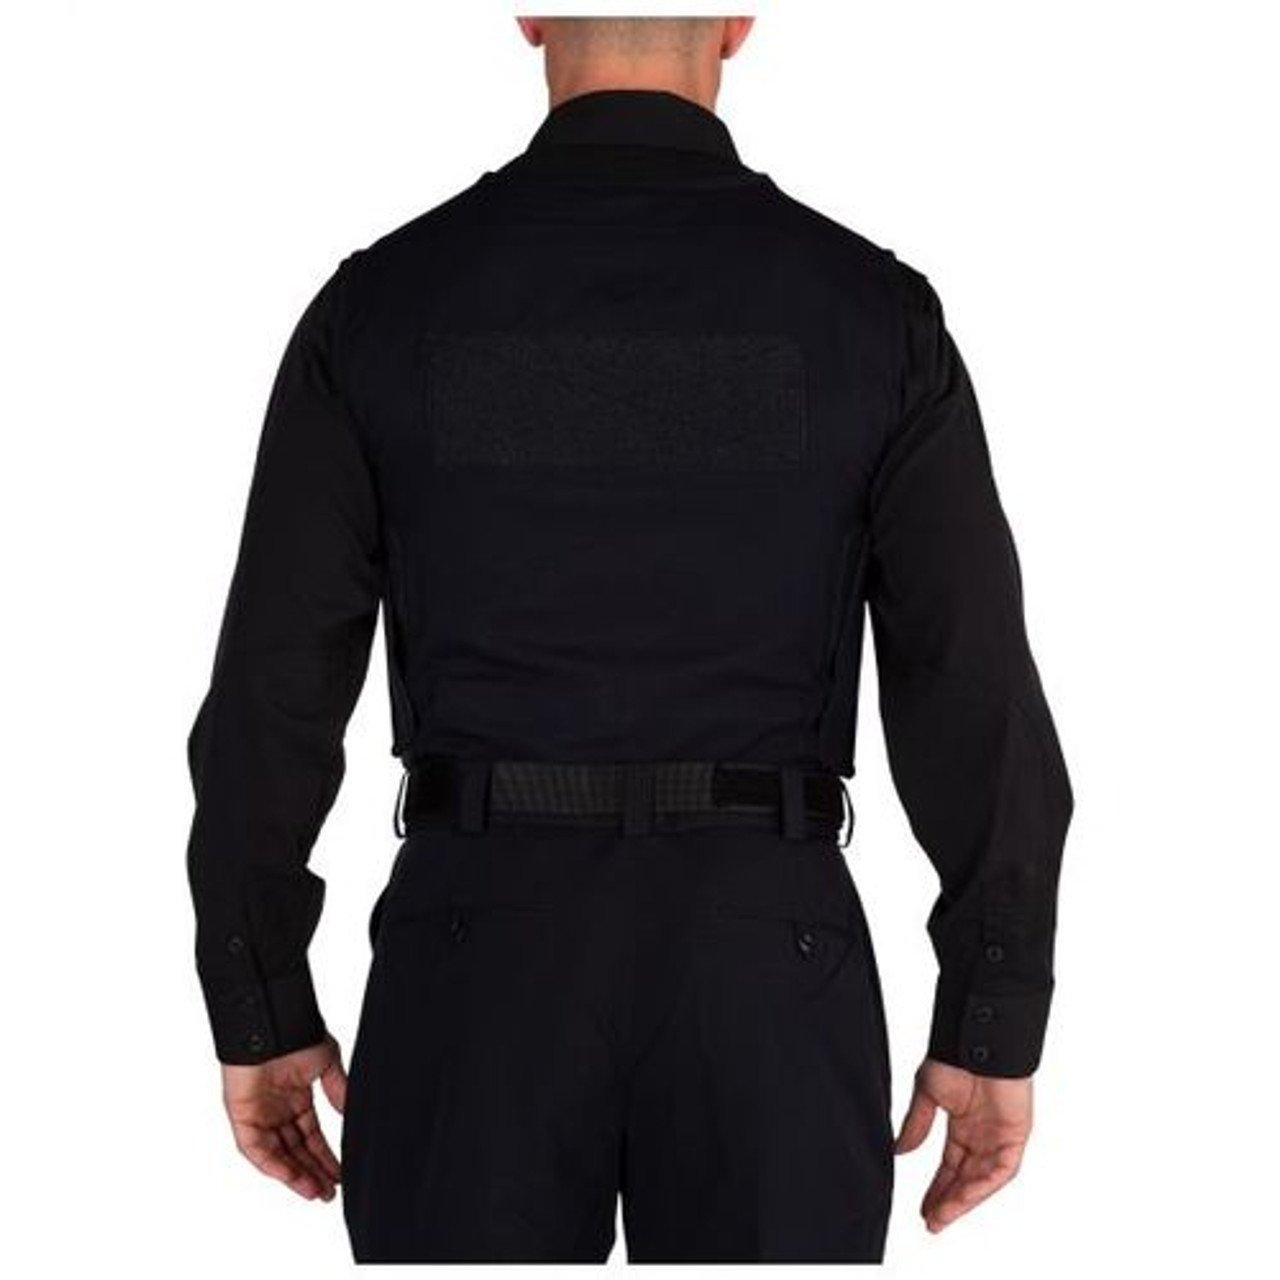 5.11 Tactical Hexgrid® Uniform Outer Carrier, available in Black, Dark Navy or Sandstone 49036